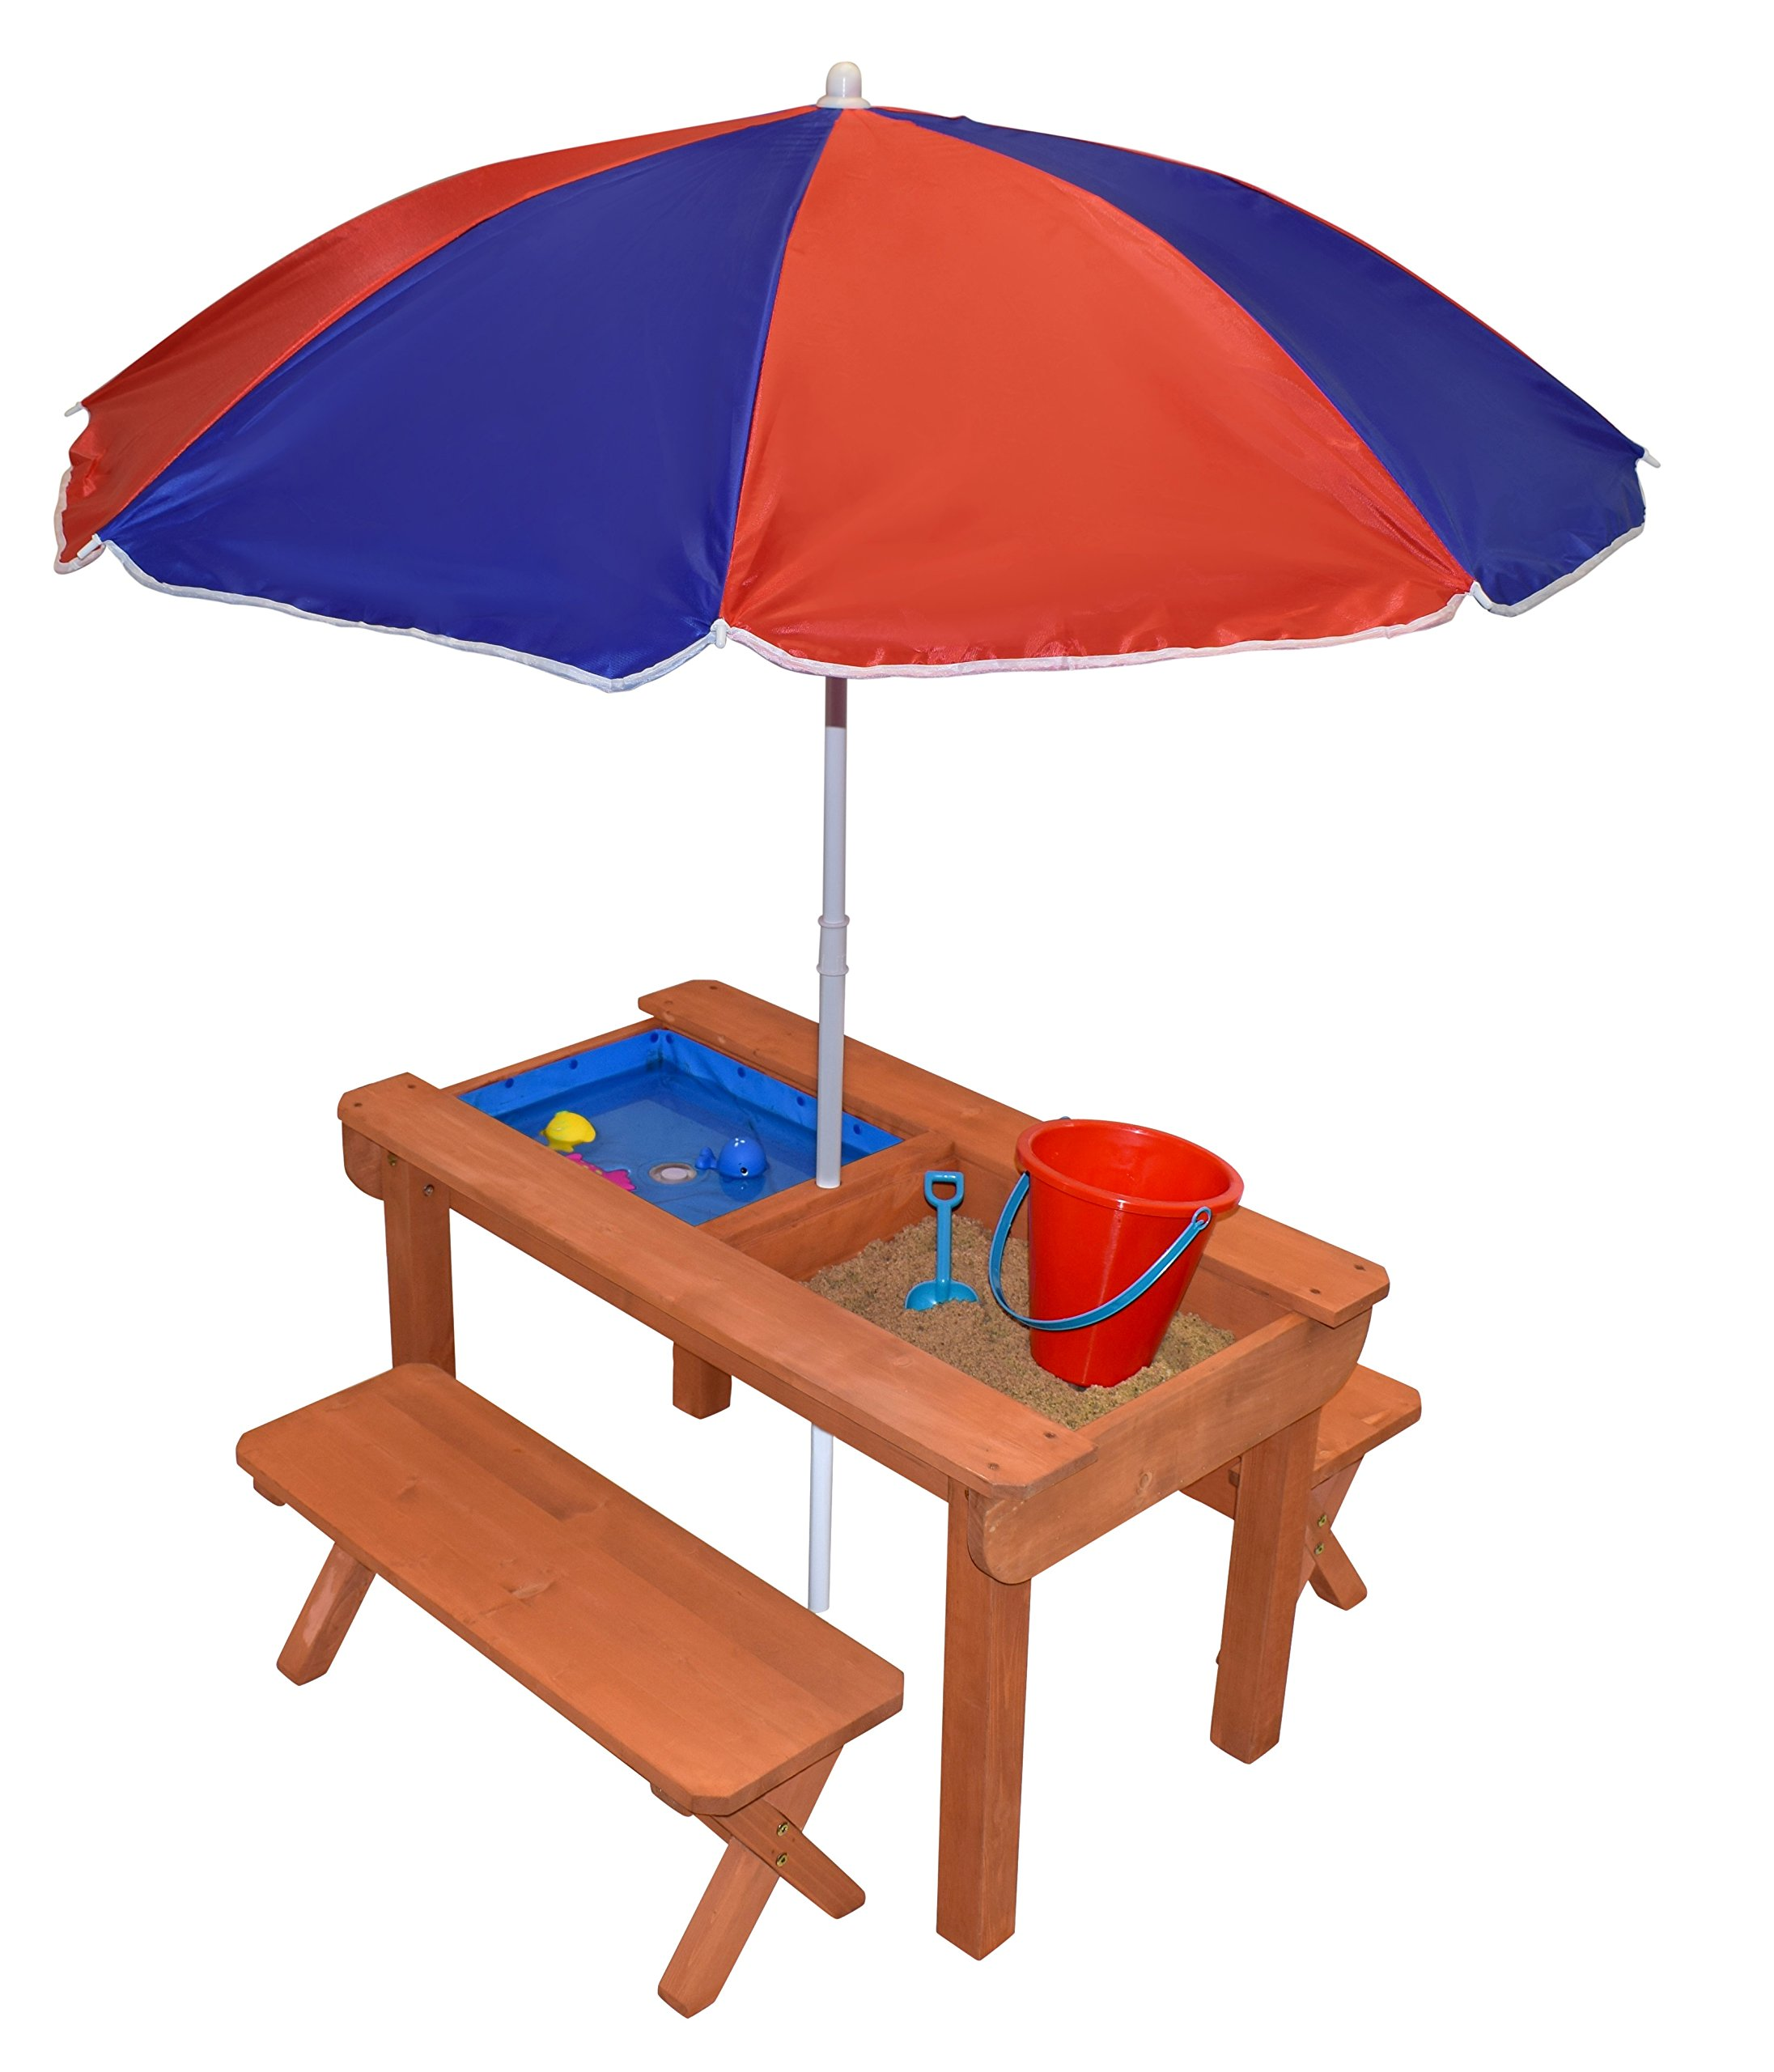 Back Bay Play Kid's Premium Sand and Water Convertible Picnic Table with Bench Seats and Umbrella All In One (Natural)